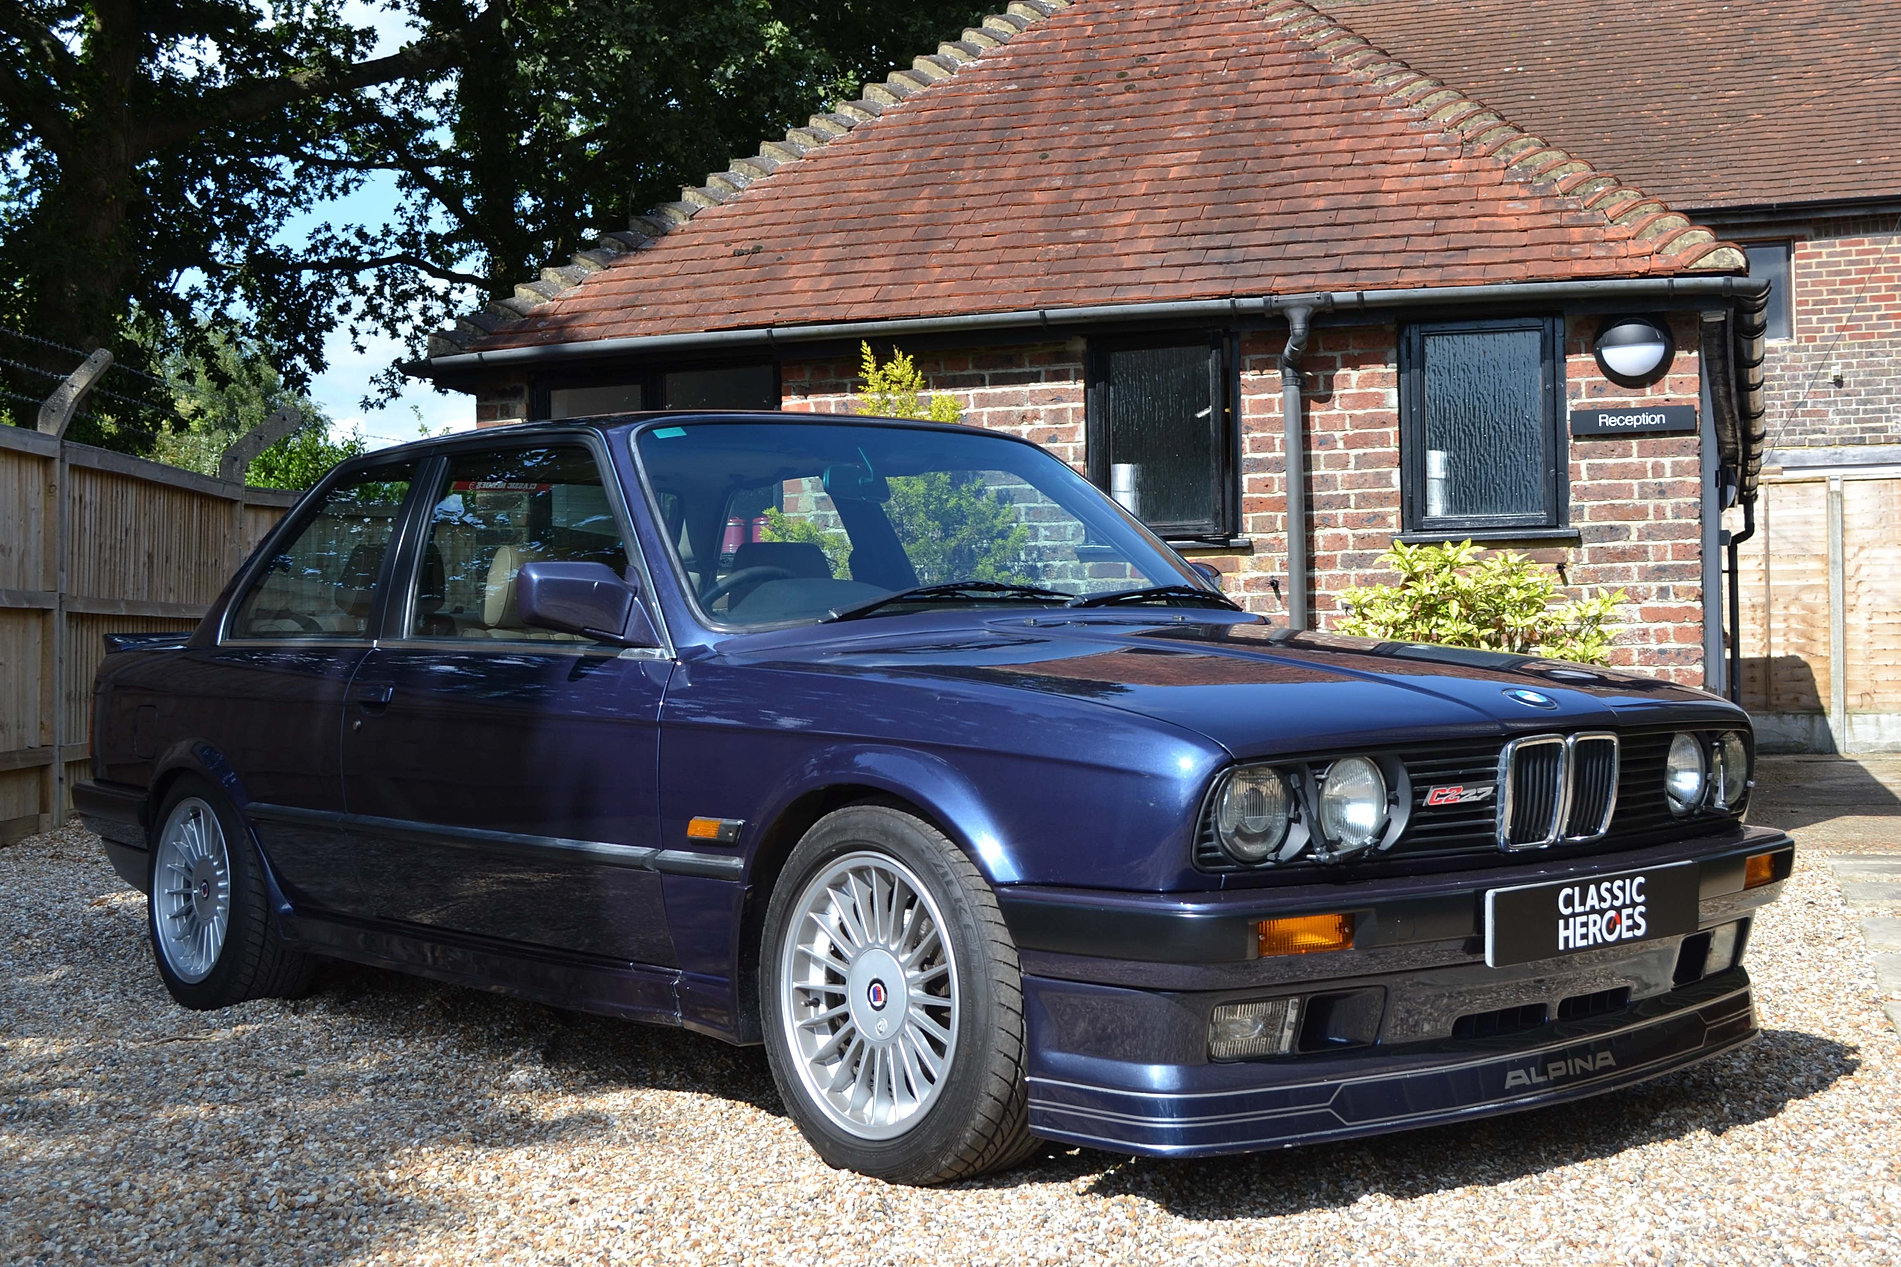 Bmw E30 Alpina C2 For Sale Classic Heroes